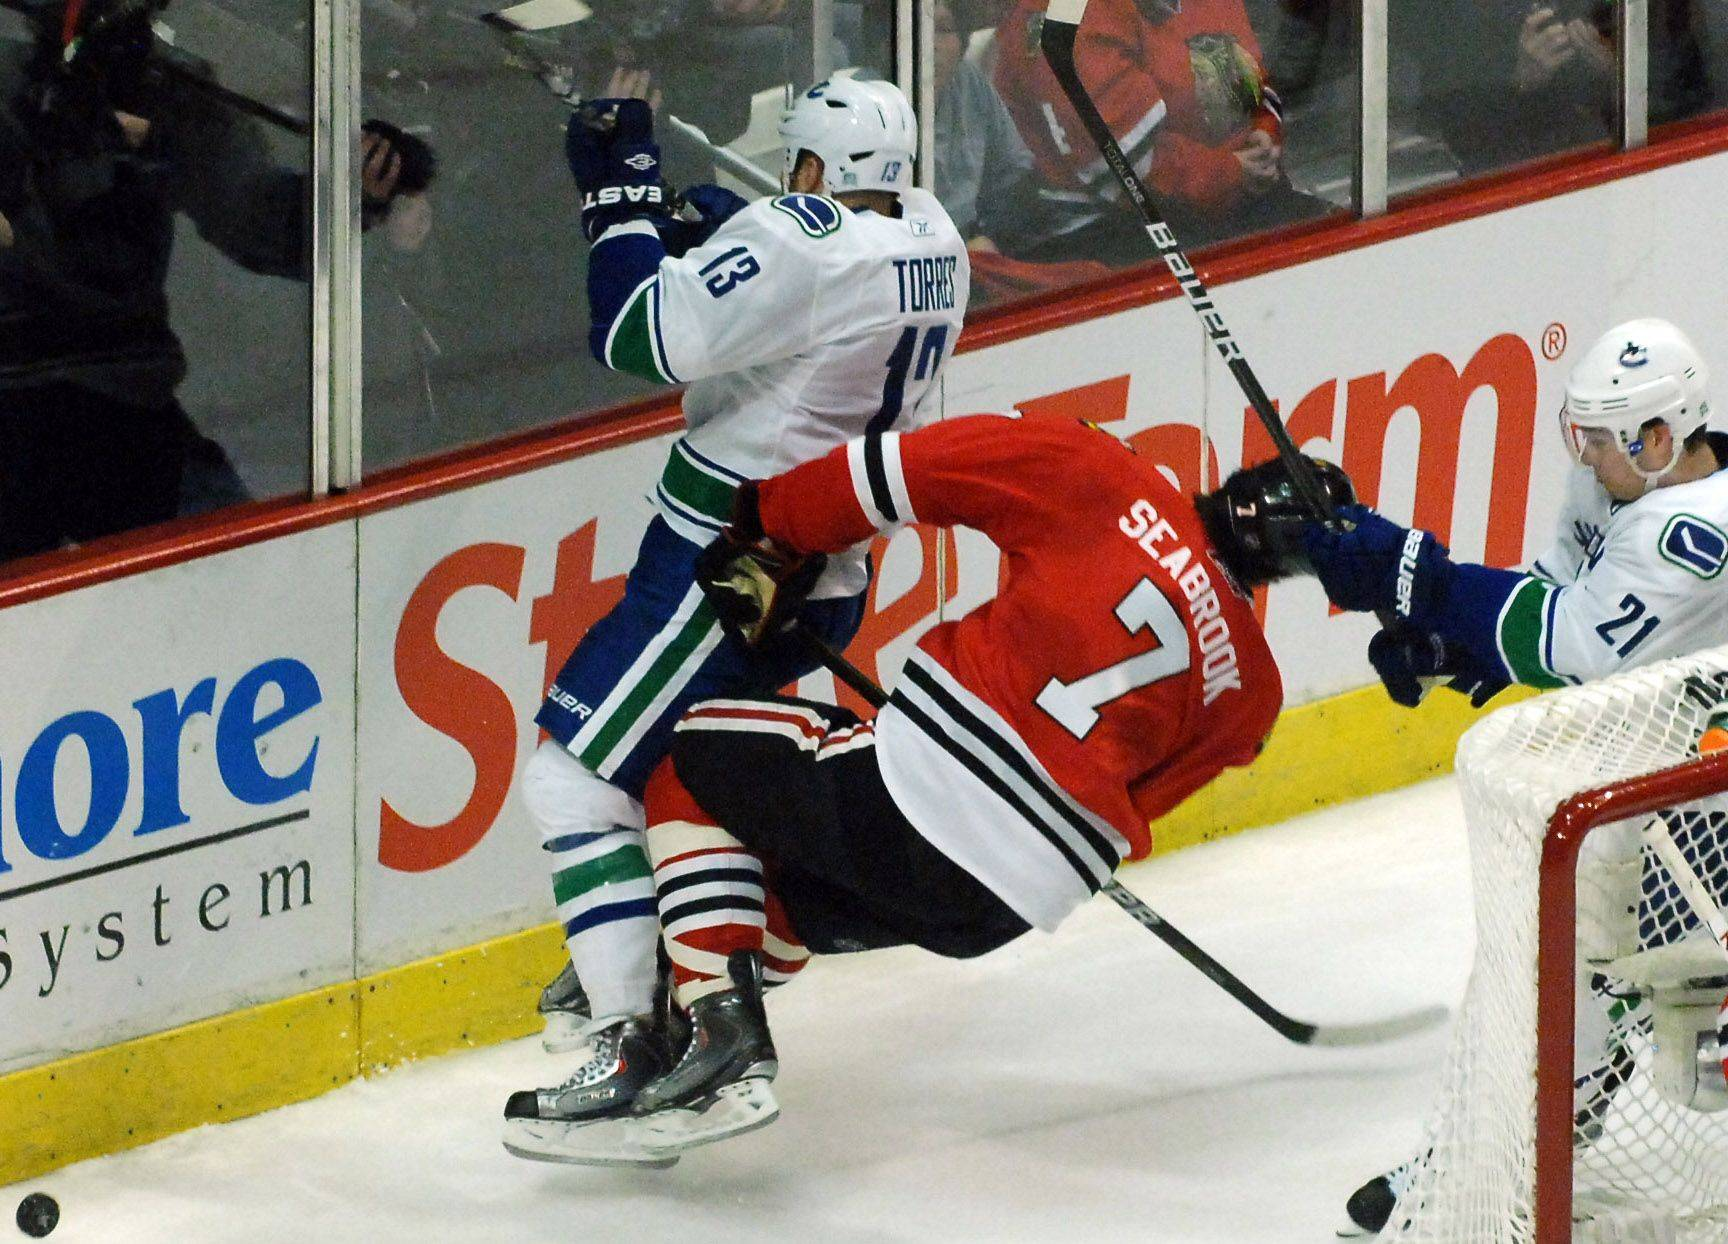 Hawks take another big hit with Seabrook sidelined